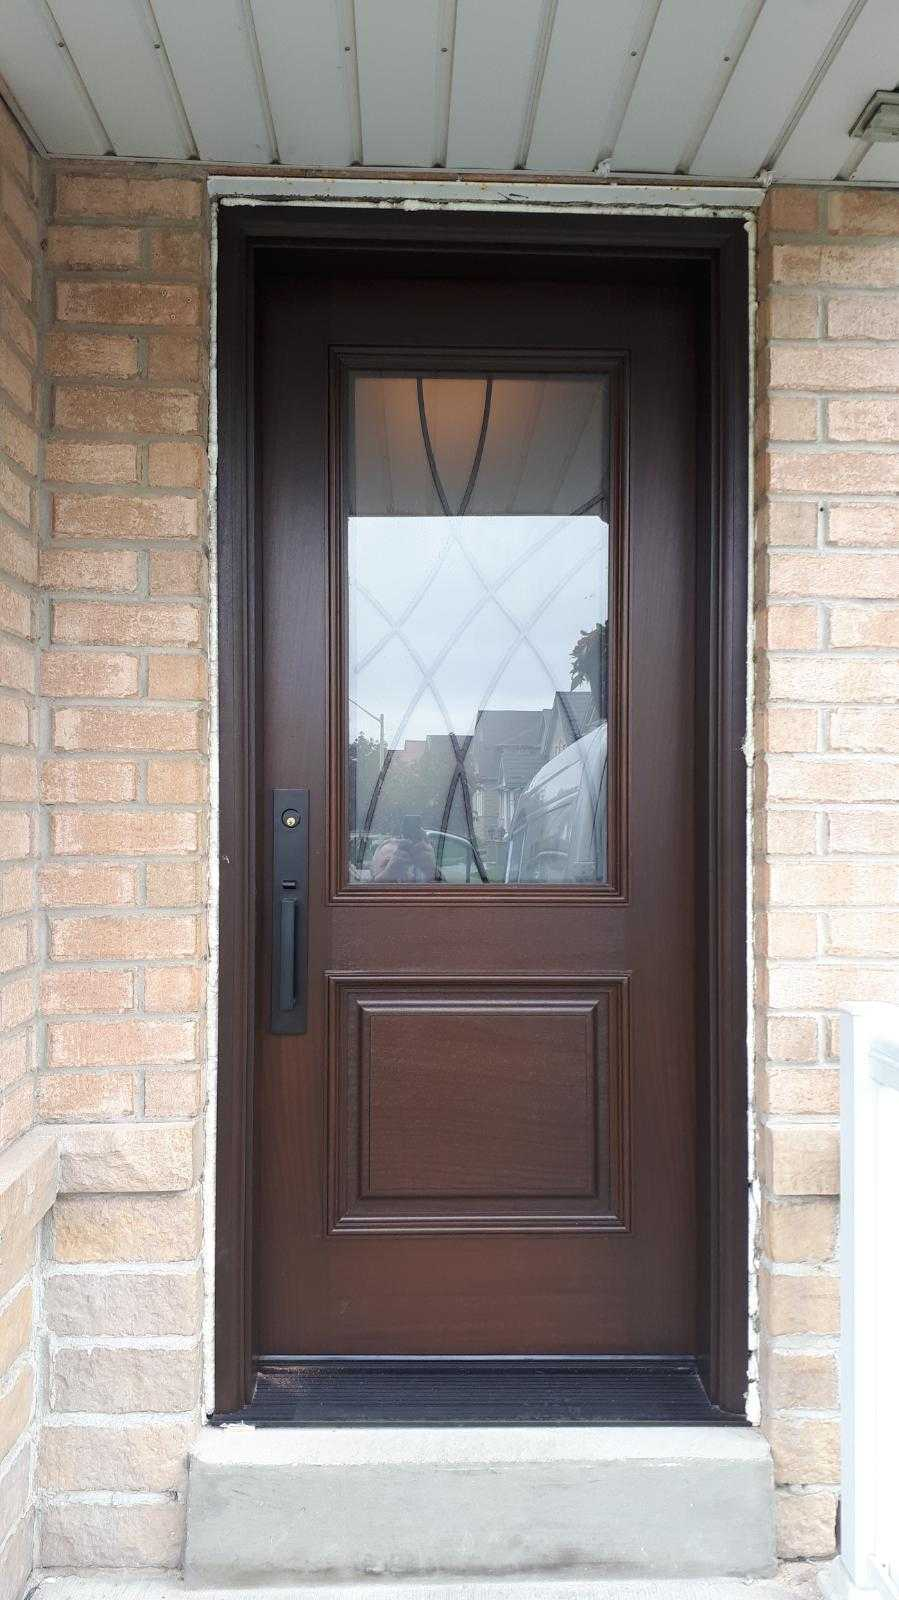 """""""Small things become great when done with love"""" #SolidWood, #Doors, #Wood #Mahogany, #CustomMadeDoors, #EntryDoors.#DistinctiveLook, #FityourHome Made by #NorthwoodDoorsInc. Your best value and quality, #HandCraftedDoors. Every door #Manifactured by us has our corporate stamp - a testament to our dedication and passion in #Woodwork. Let #NorthwoodDoorsInc. add to your home's #CurbAppeal by enhancing the quality and beauty of your #EntryDoors. Visit our #Showroom to envision how one of our many #doors on display might look like at your #Home. Contact us today Tel. 416-253-2034, info@northwooddoors.com, www.northwooddoor.com — in Toronto, Ontario"""